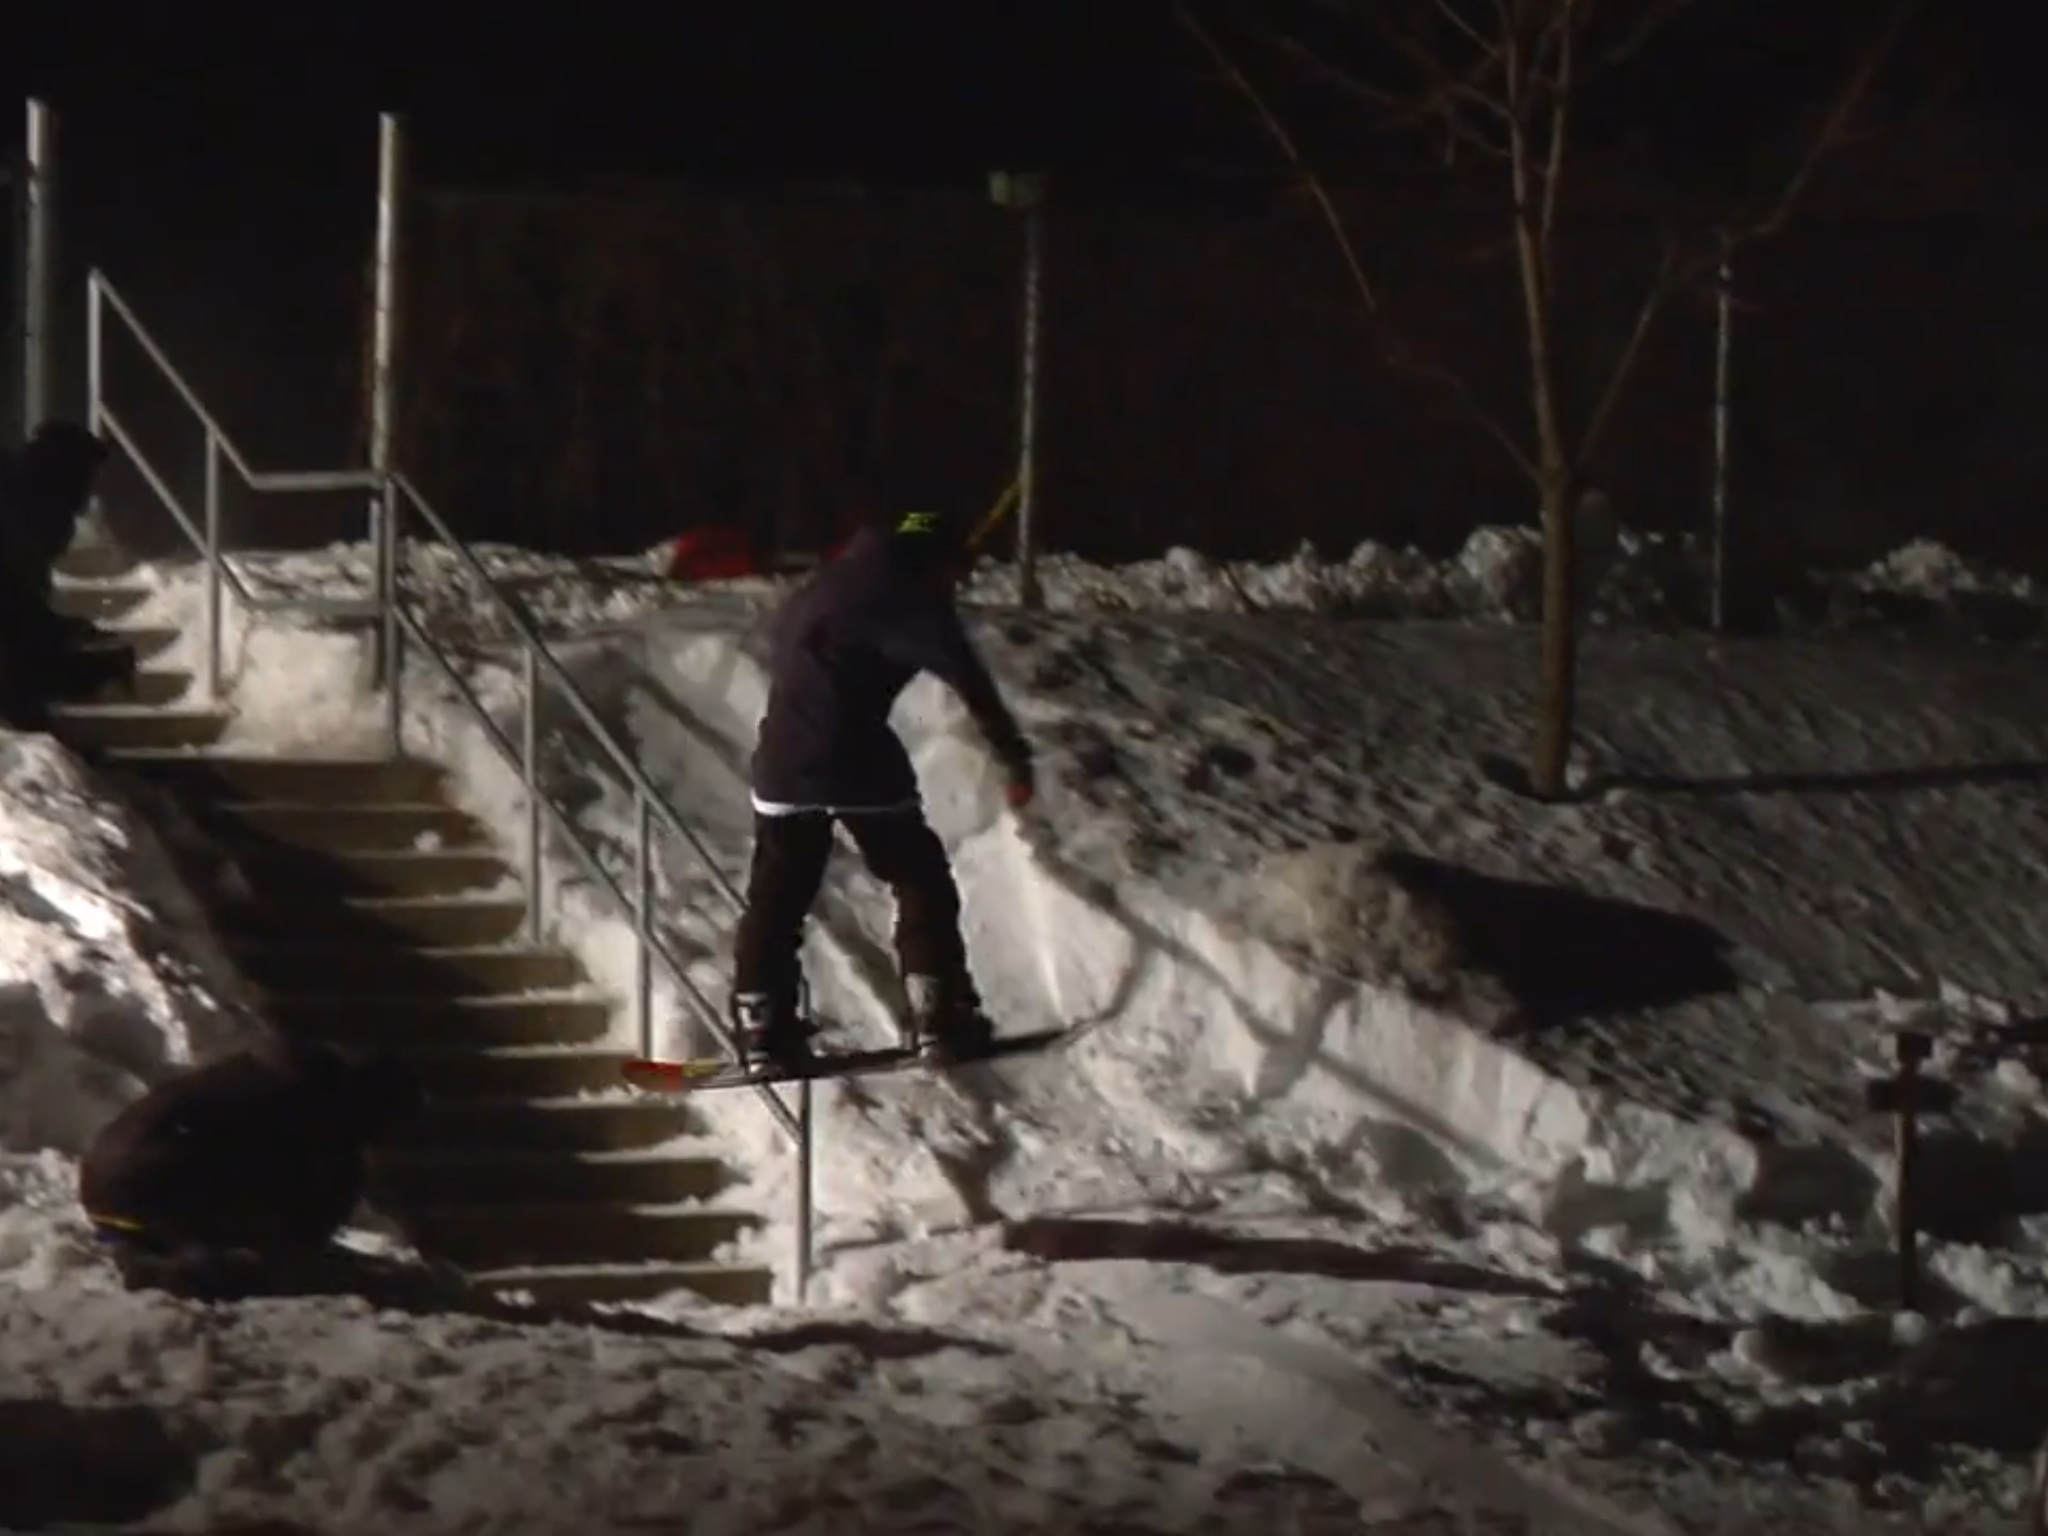 Cody Beiersdorf full part